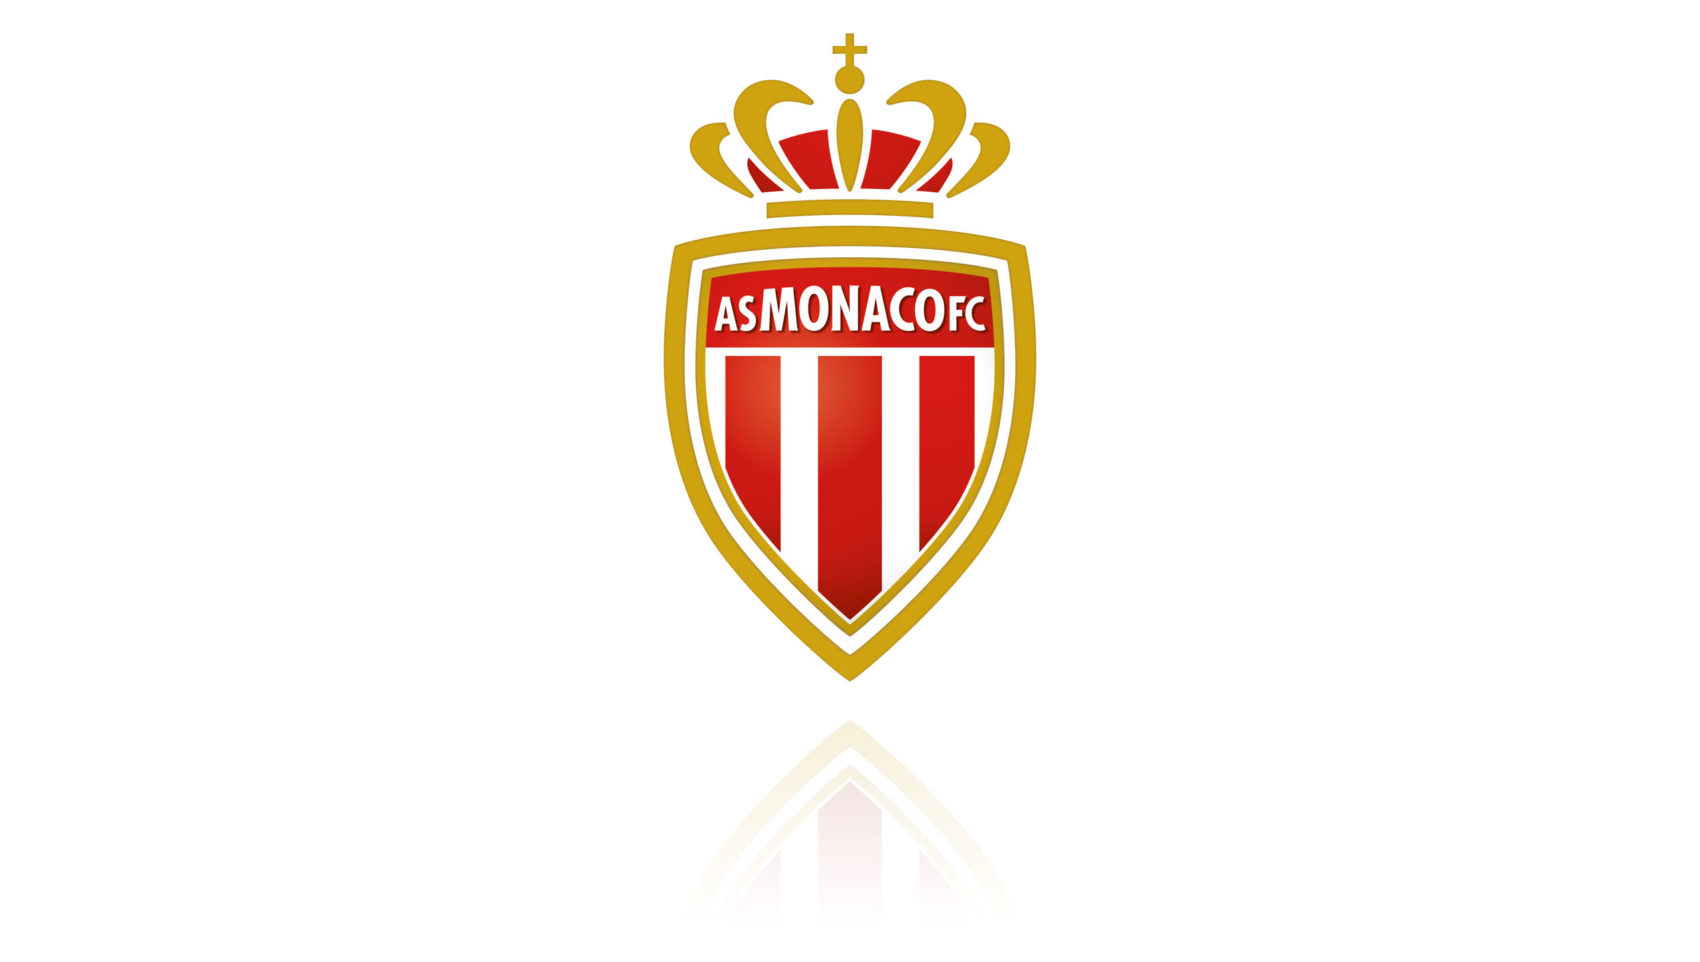 projet_project_realisation_01_AS_Monaco_FC